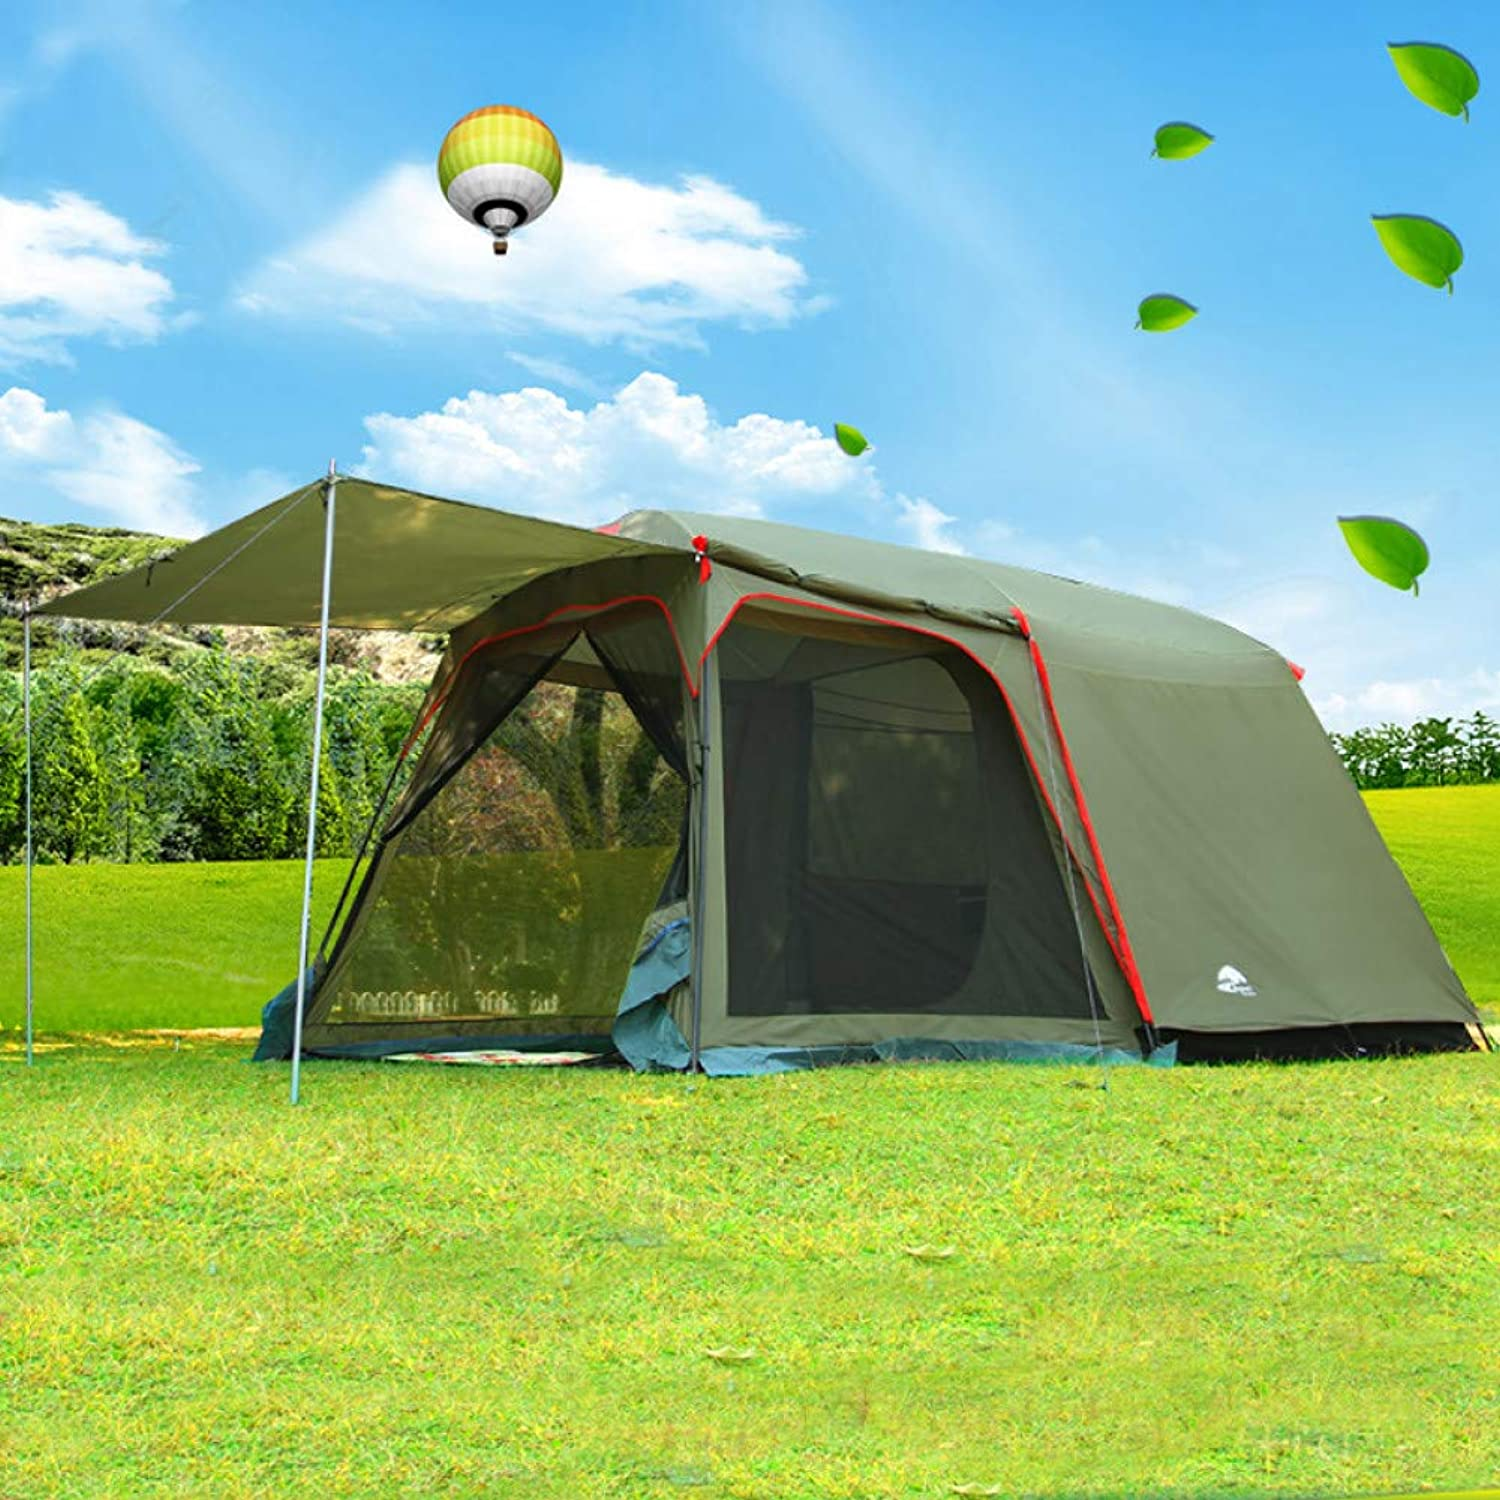 Ashuang Outdoor-Camping für 4-8 Personen Anti-Regenwind Groes reisendes Campingzelt in groem Raum